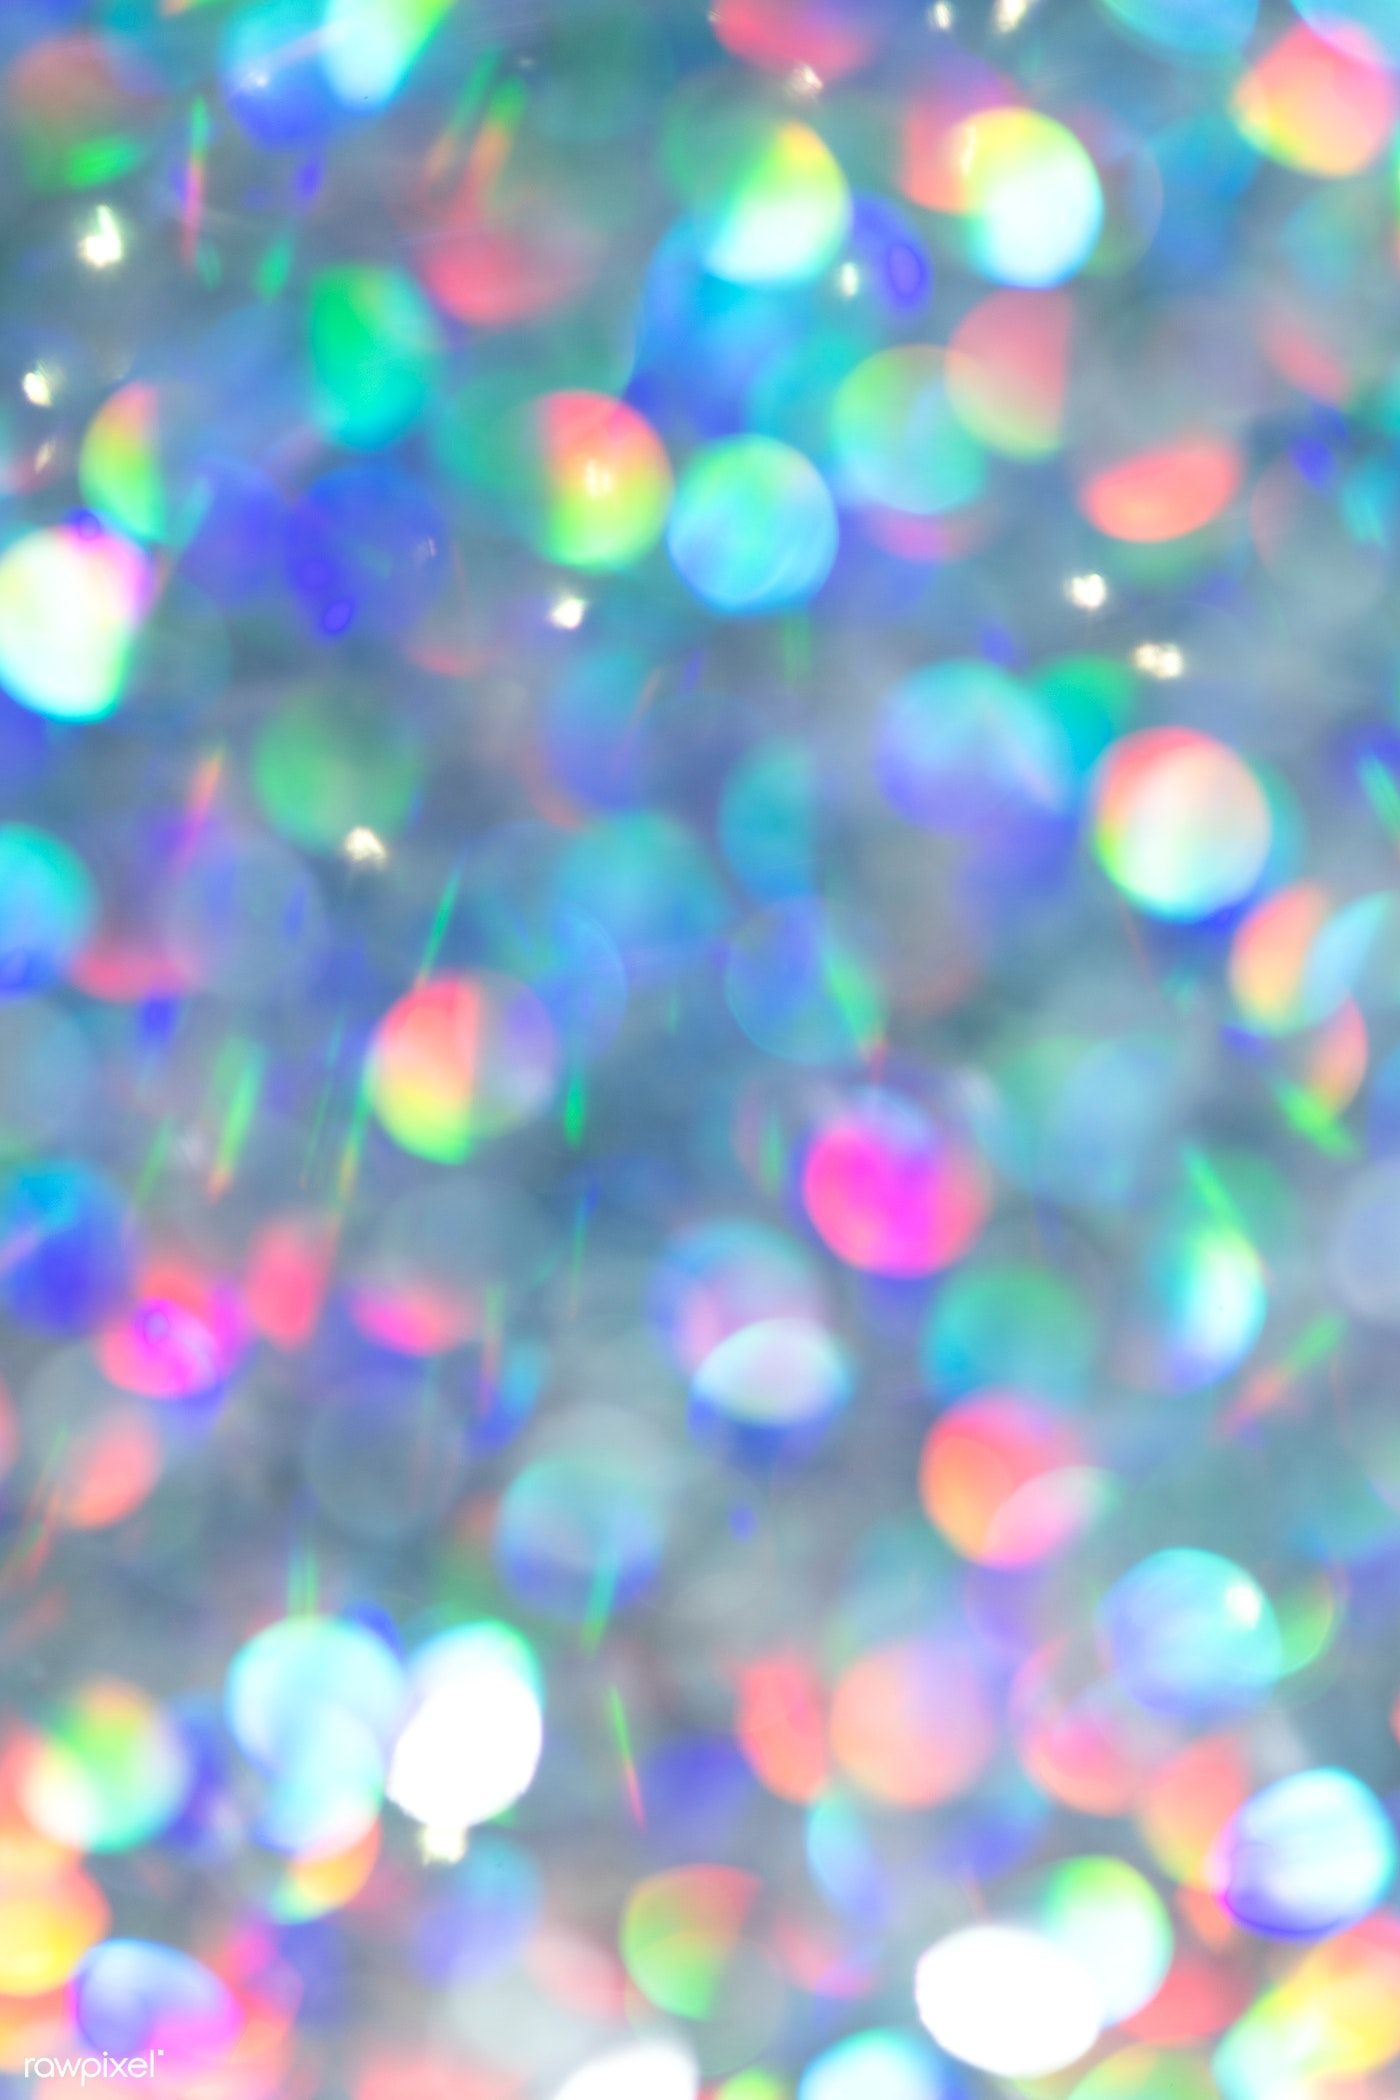 Abstract Bokeh Blurred Lights Background Free Image By Rawpixel Com Teddy Rawpixel Blurred Lights Blur Light Background Abstract